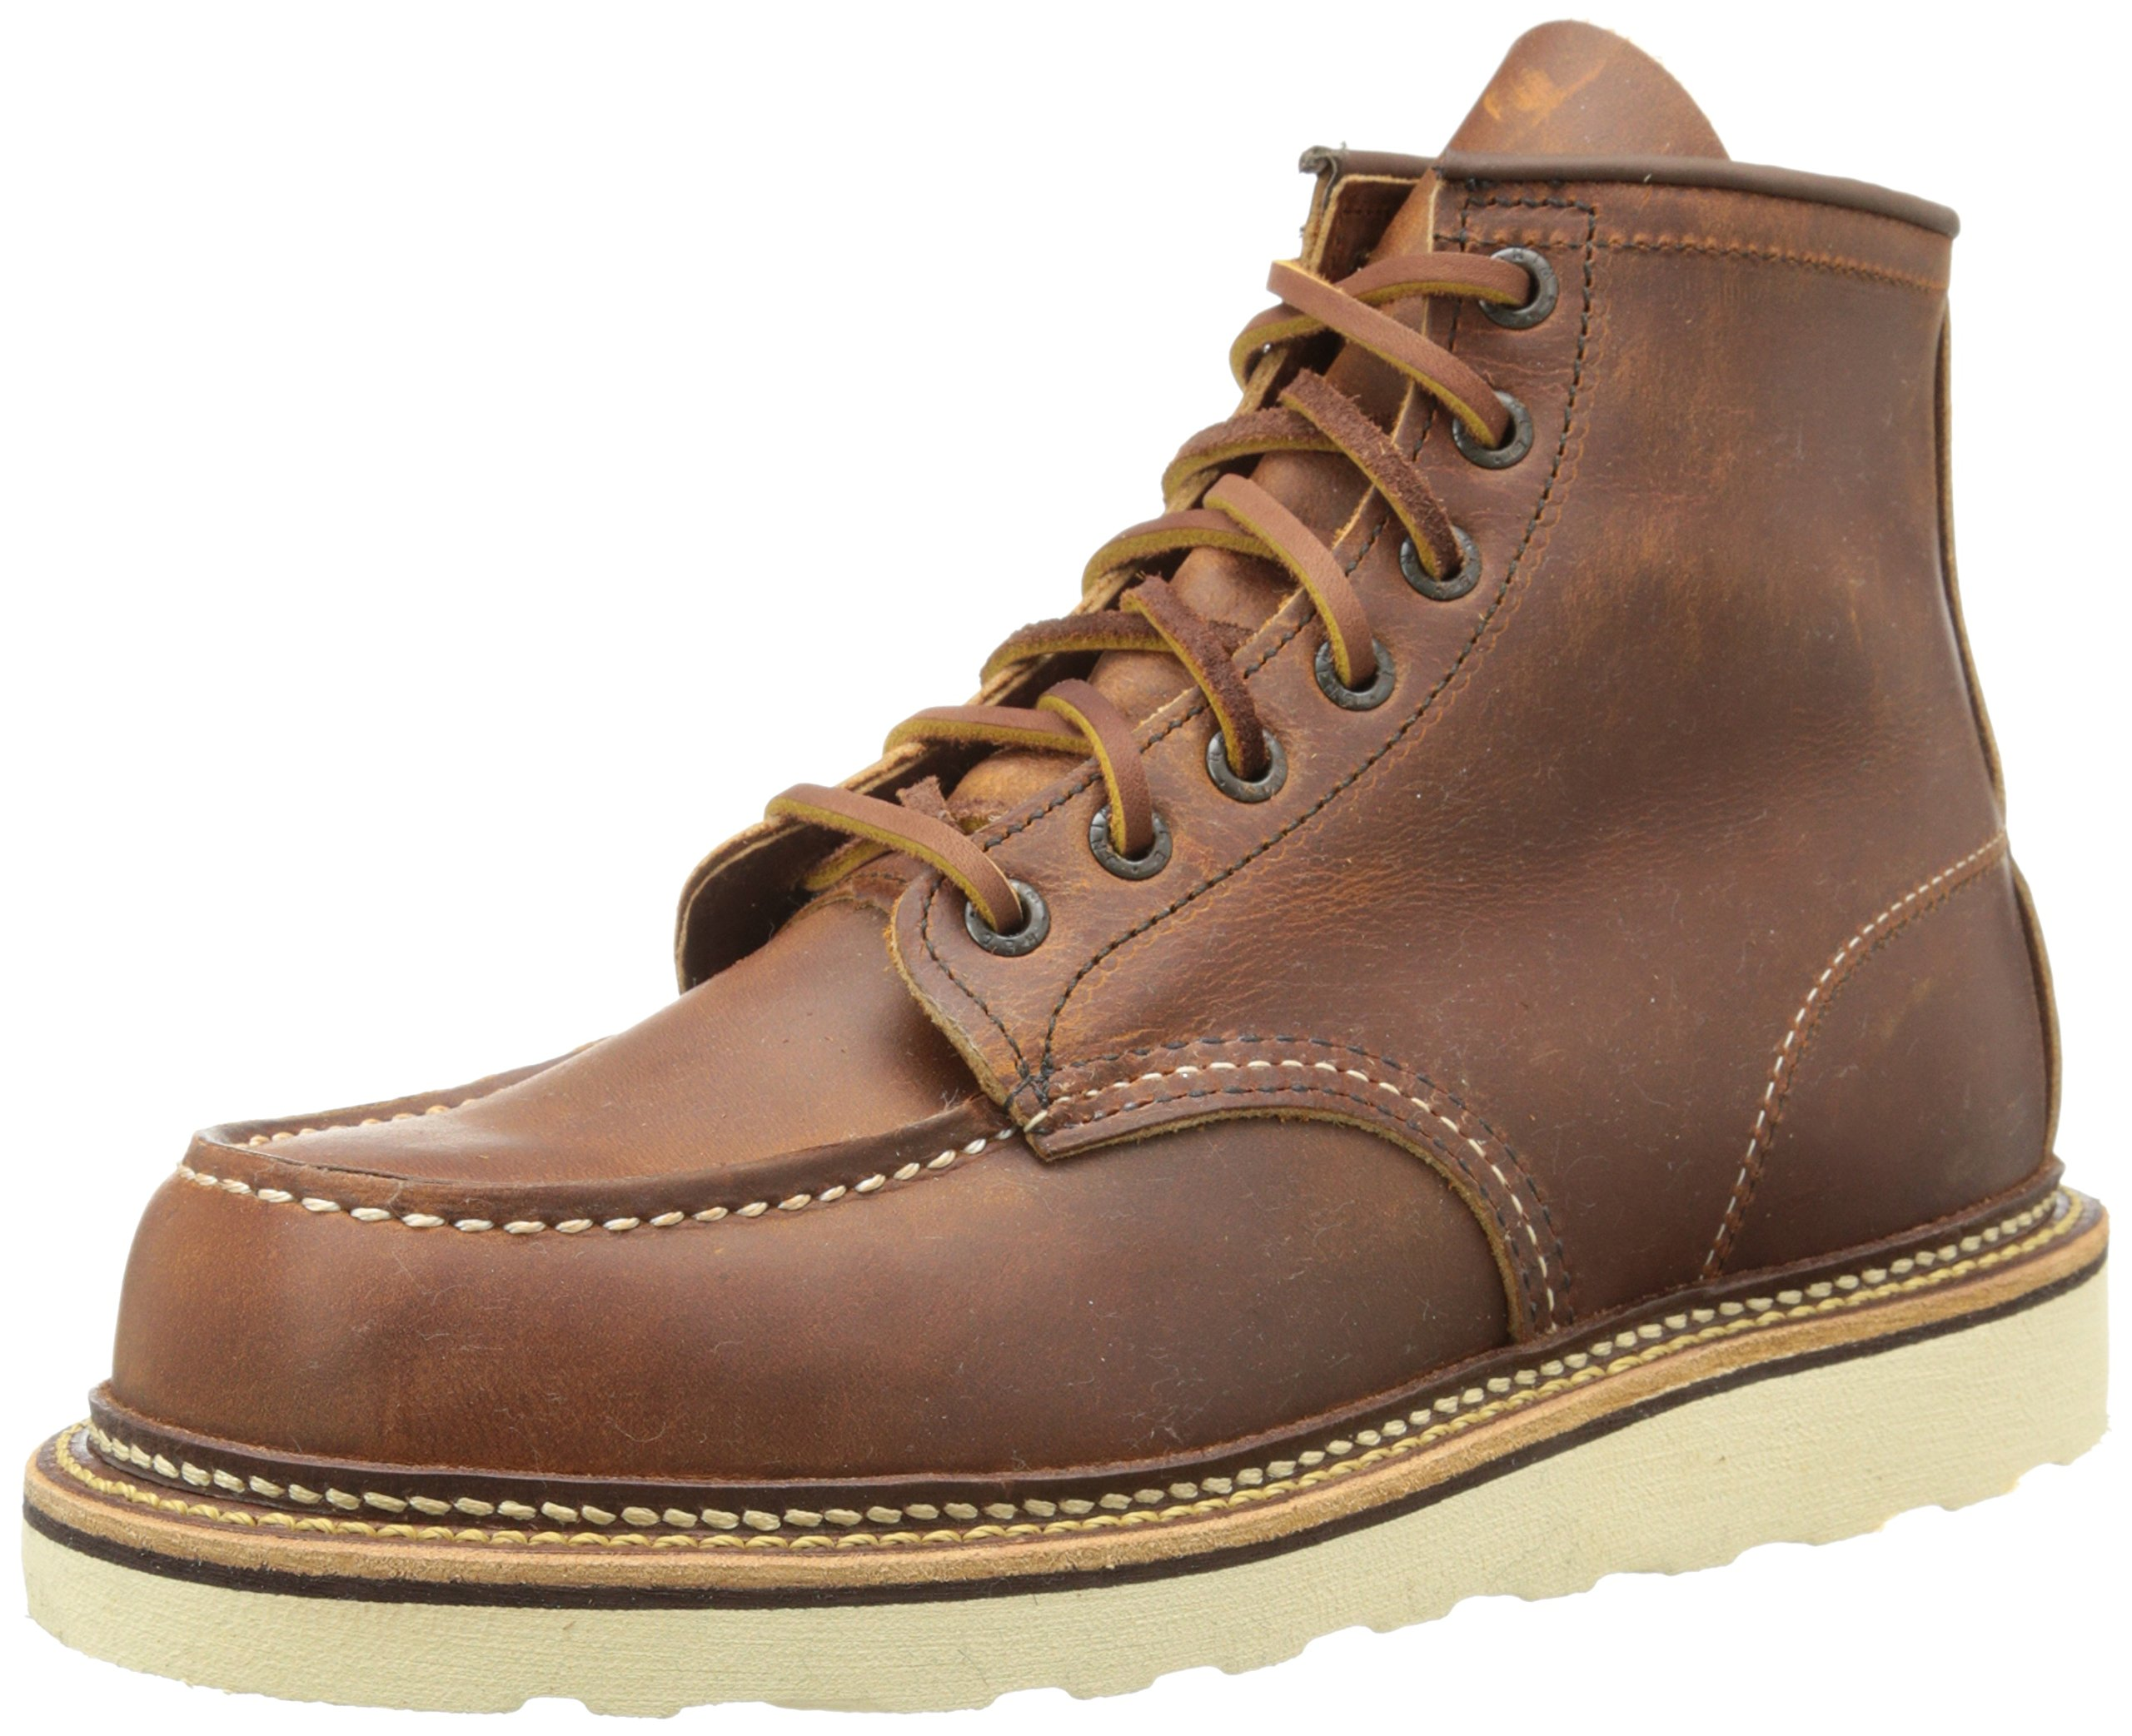 Red Wing Heritage Men's Classic 1907 6-Inch Moc Toe